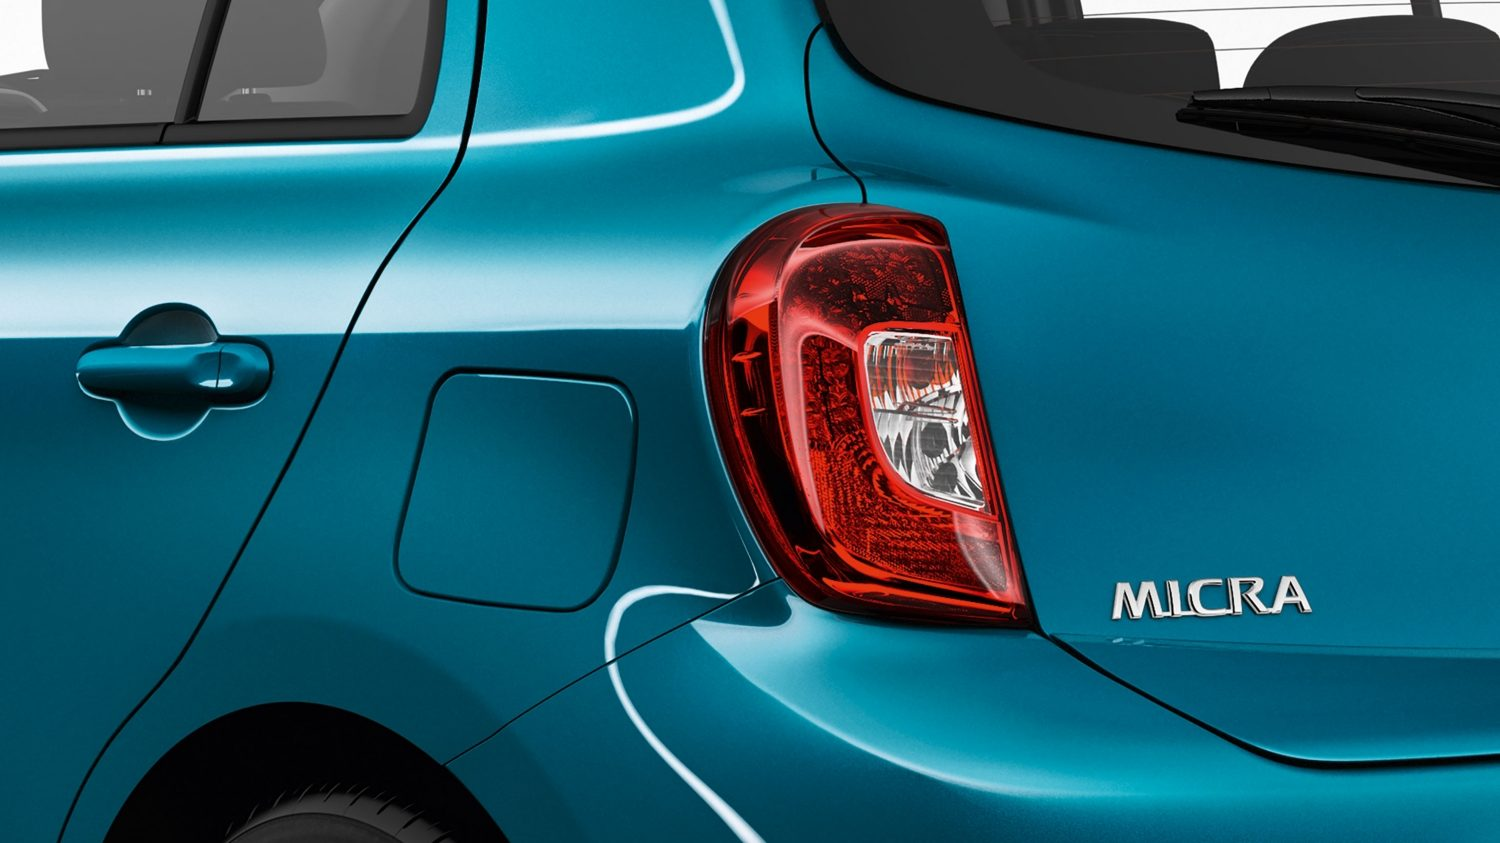 Nissan Micra | LED tail lights